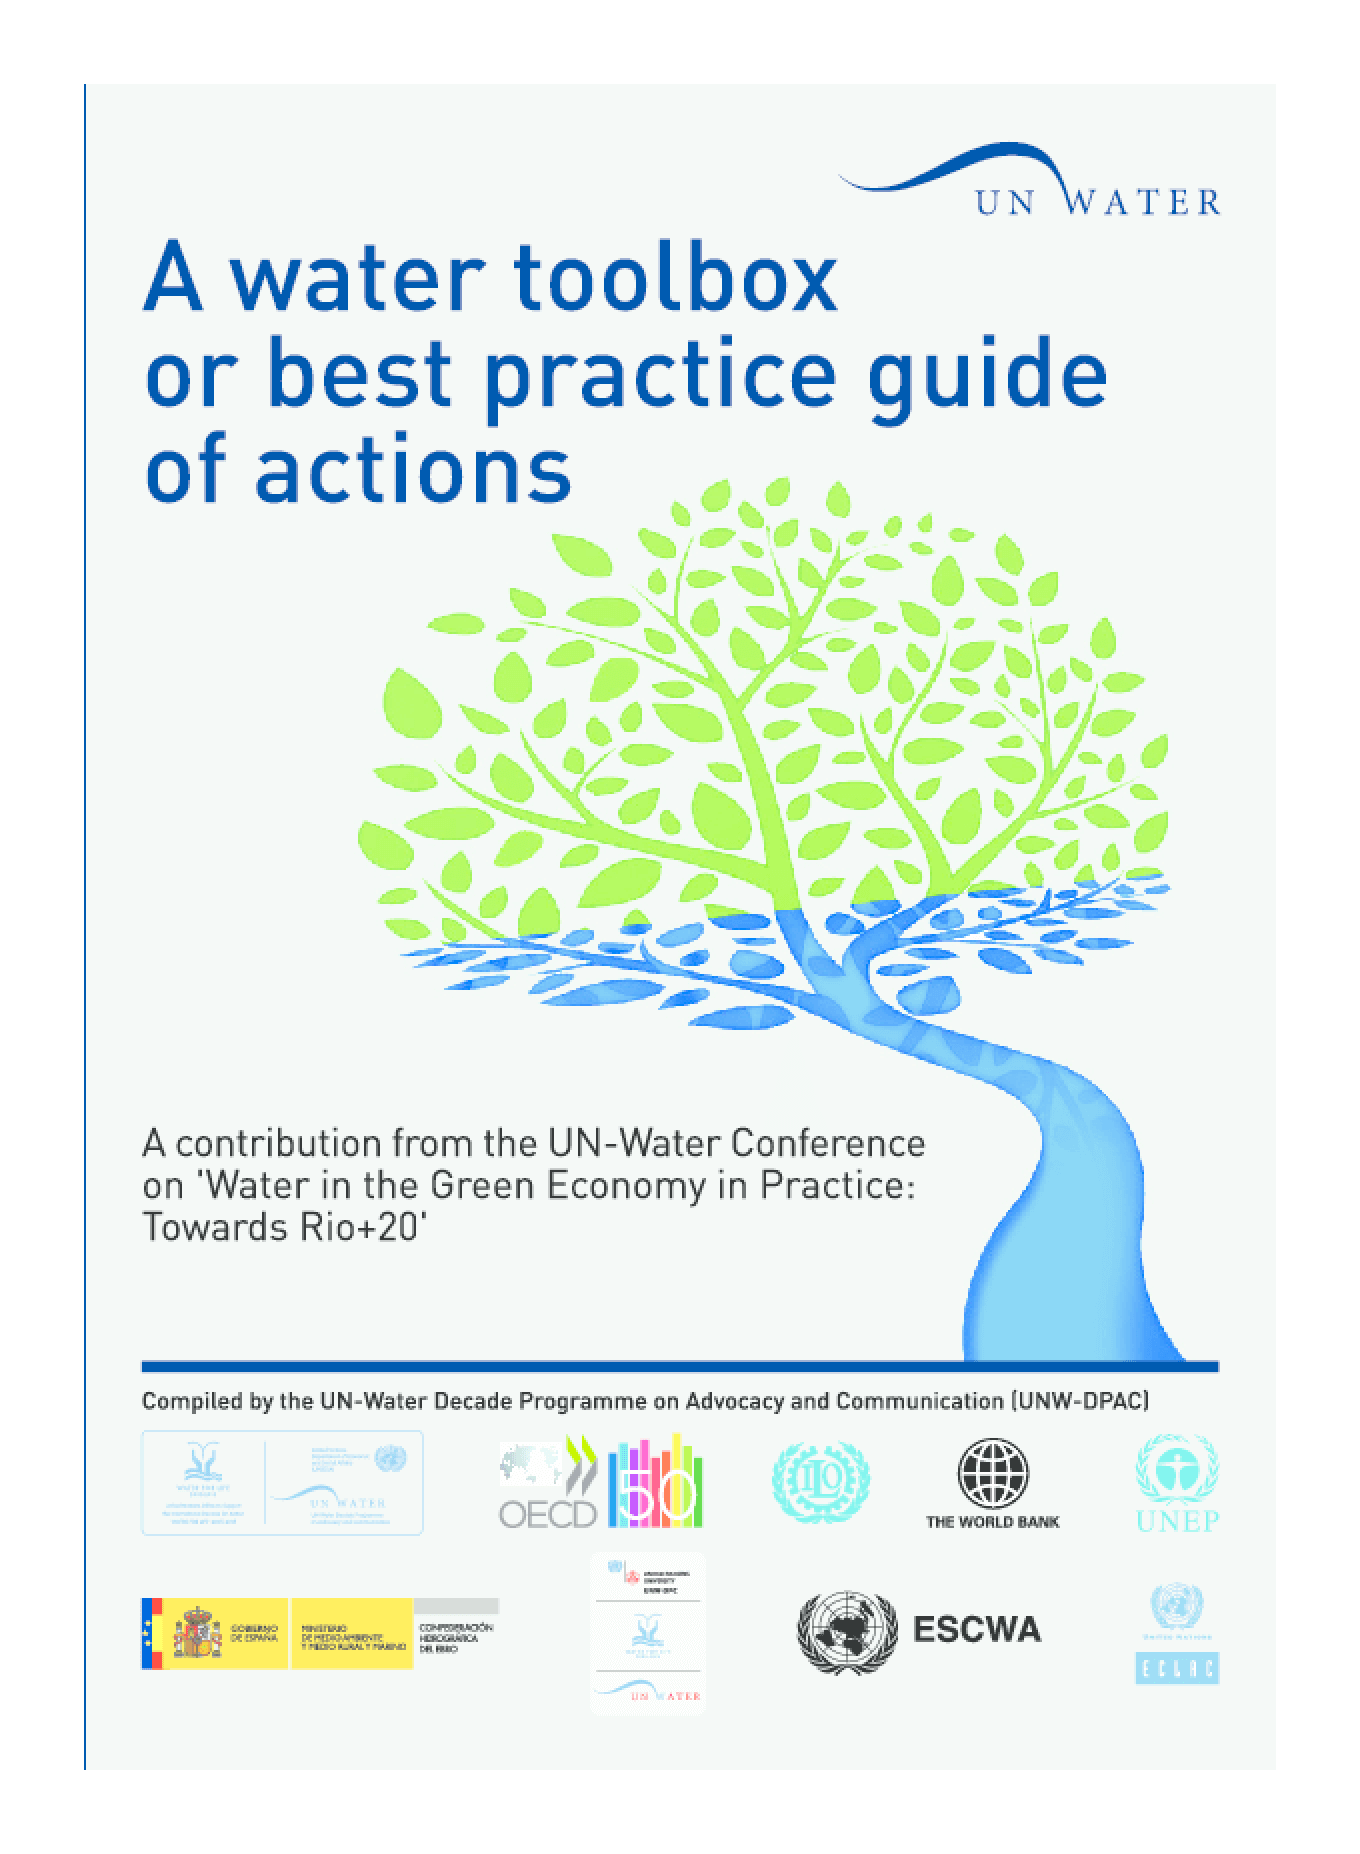 Water in the Green Economy in Practice: A Water Toolbox or Best Practices Guide of Action